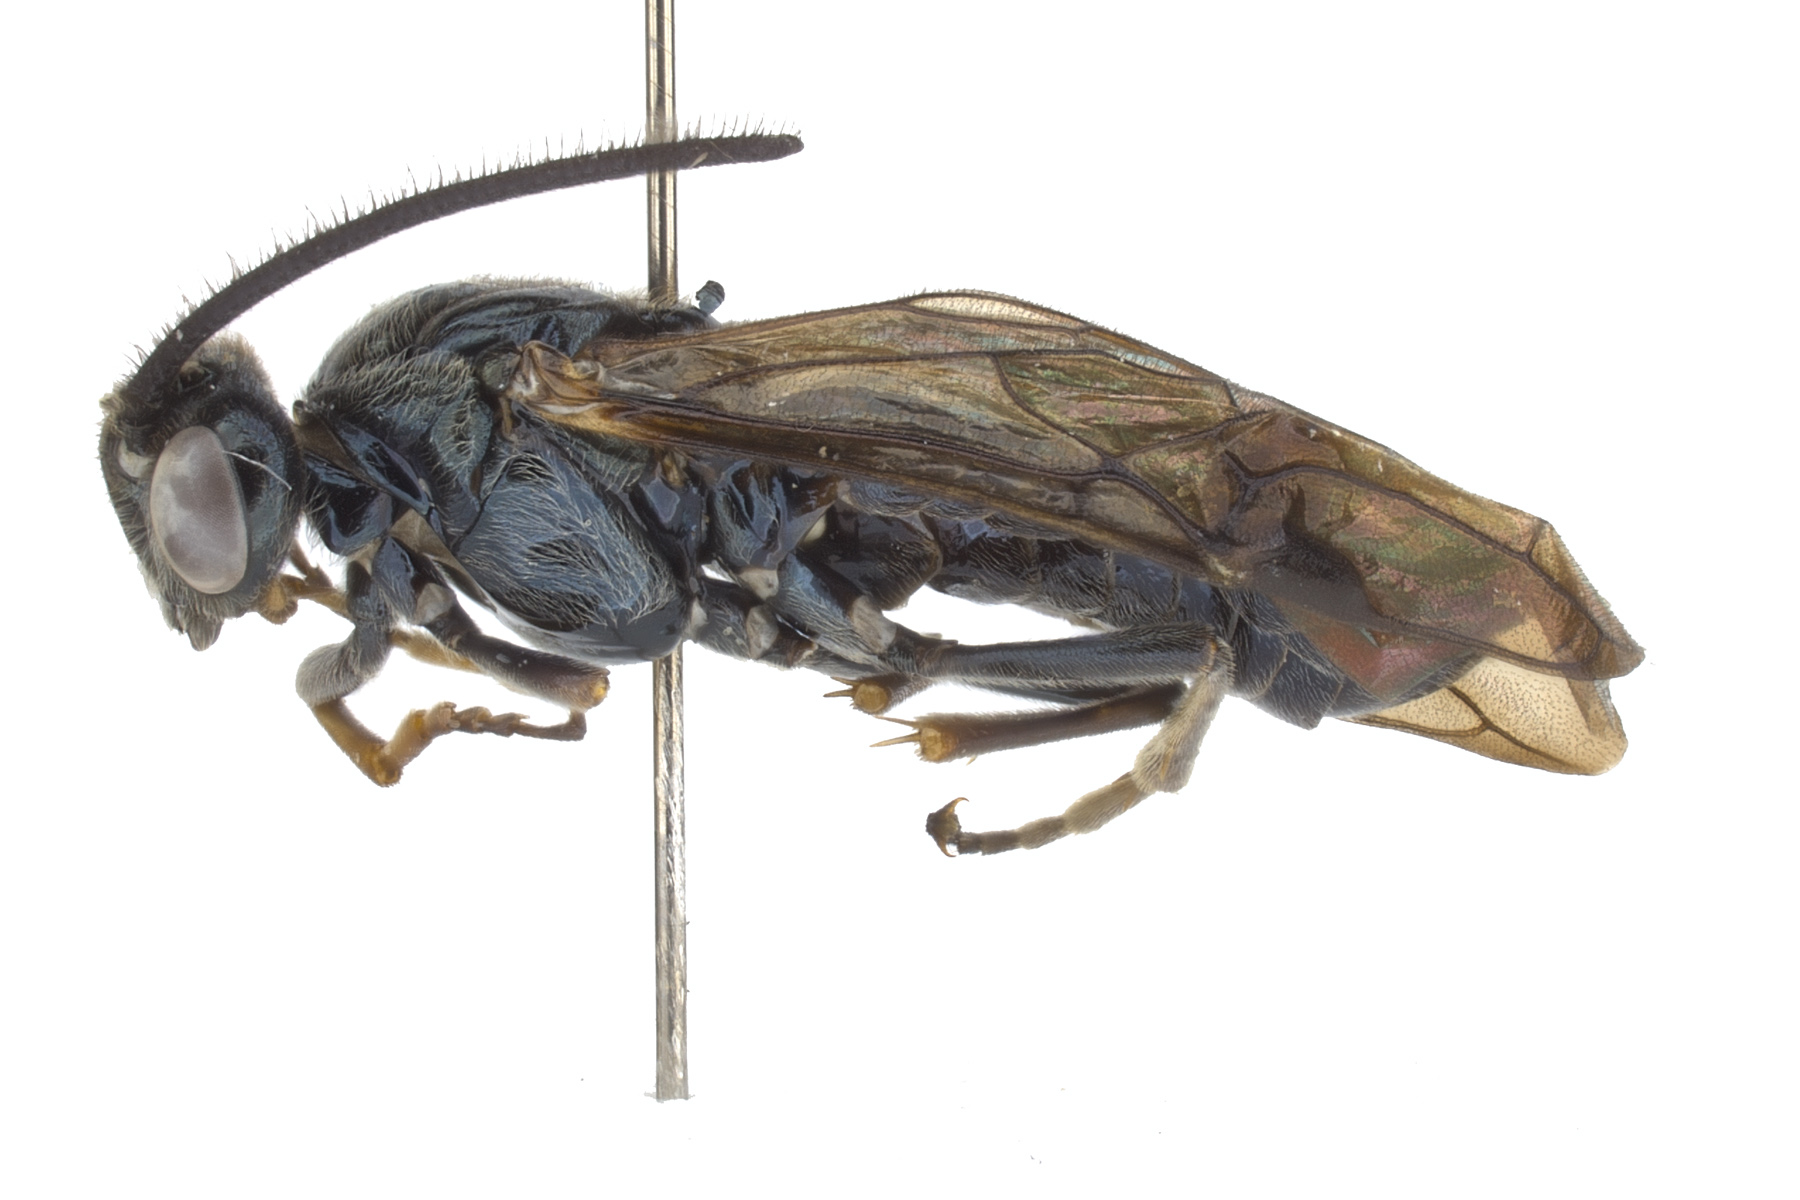 <em>Arge</em> sp. male lateral habitus; photo by J. Orr, WSDA